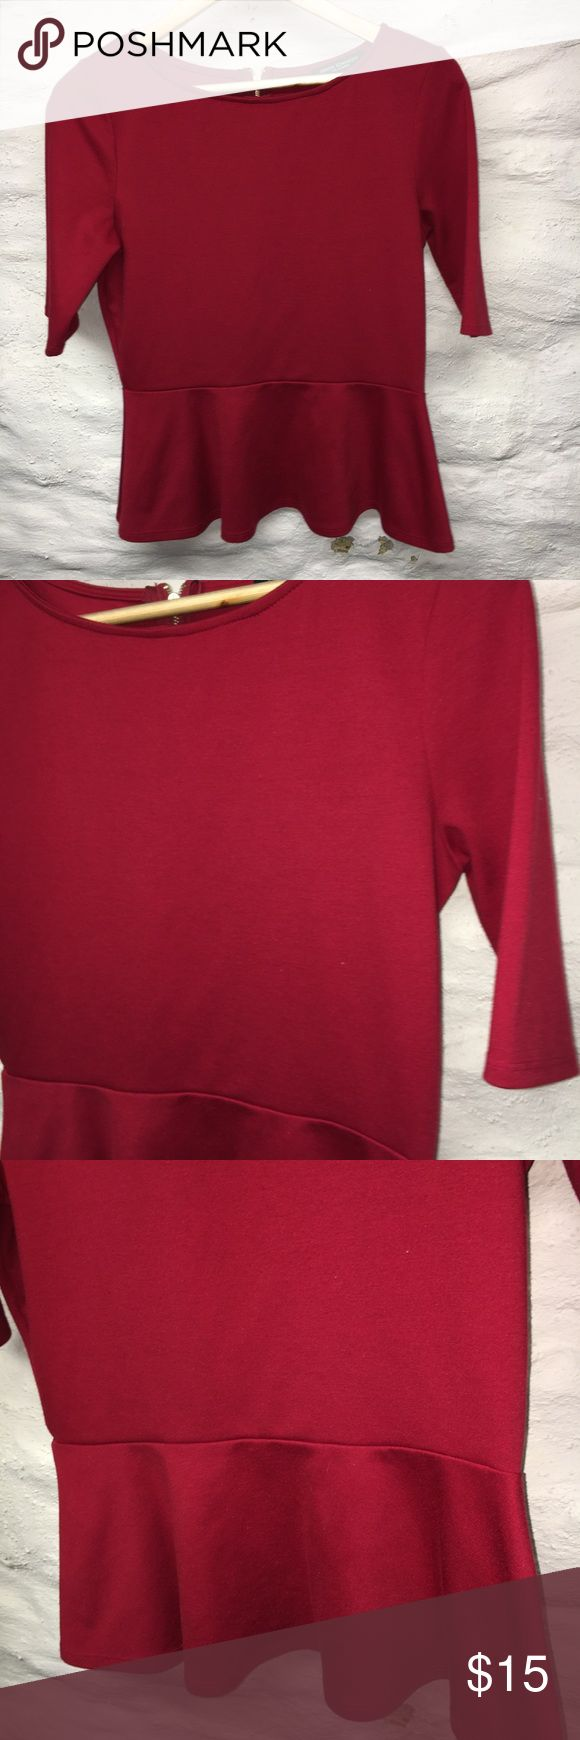 Green envelope red peplum Blouse medium Cute peplum Blouse, size medium, gold colored Zipper Back, has some minor pilling. Preowned with lots of life left! green envelope Tops Blouses